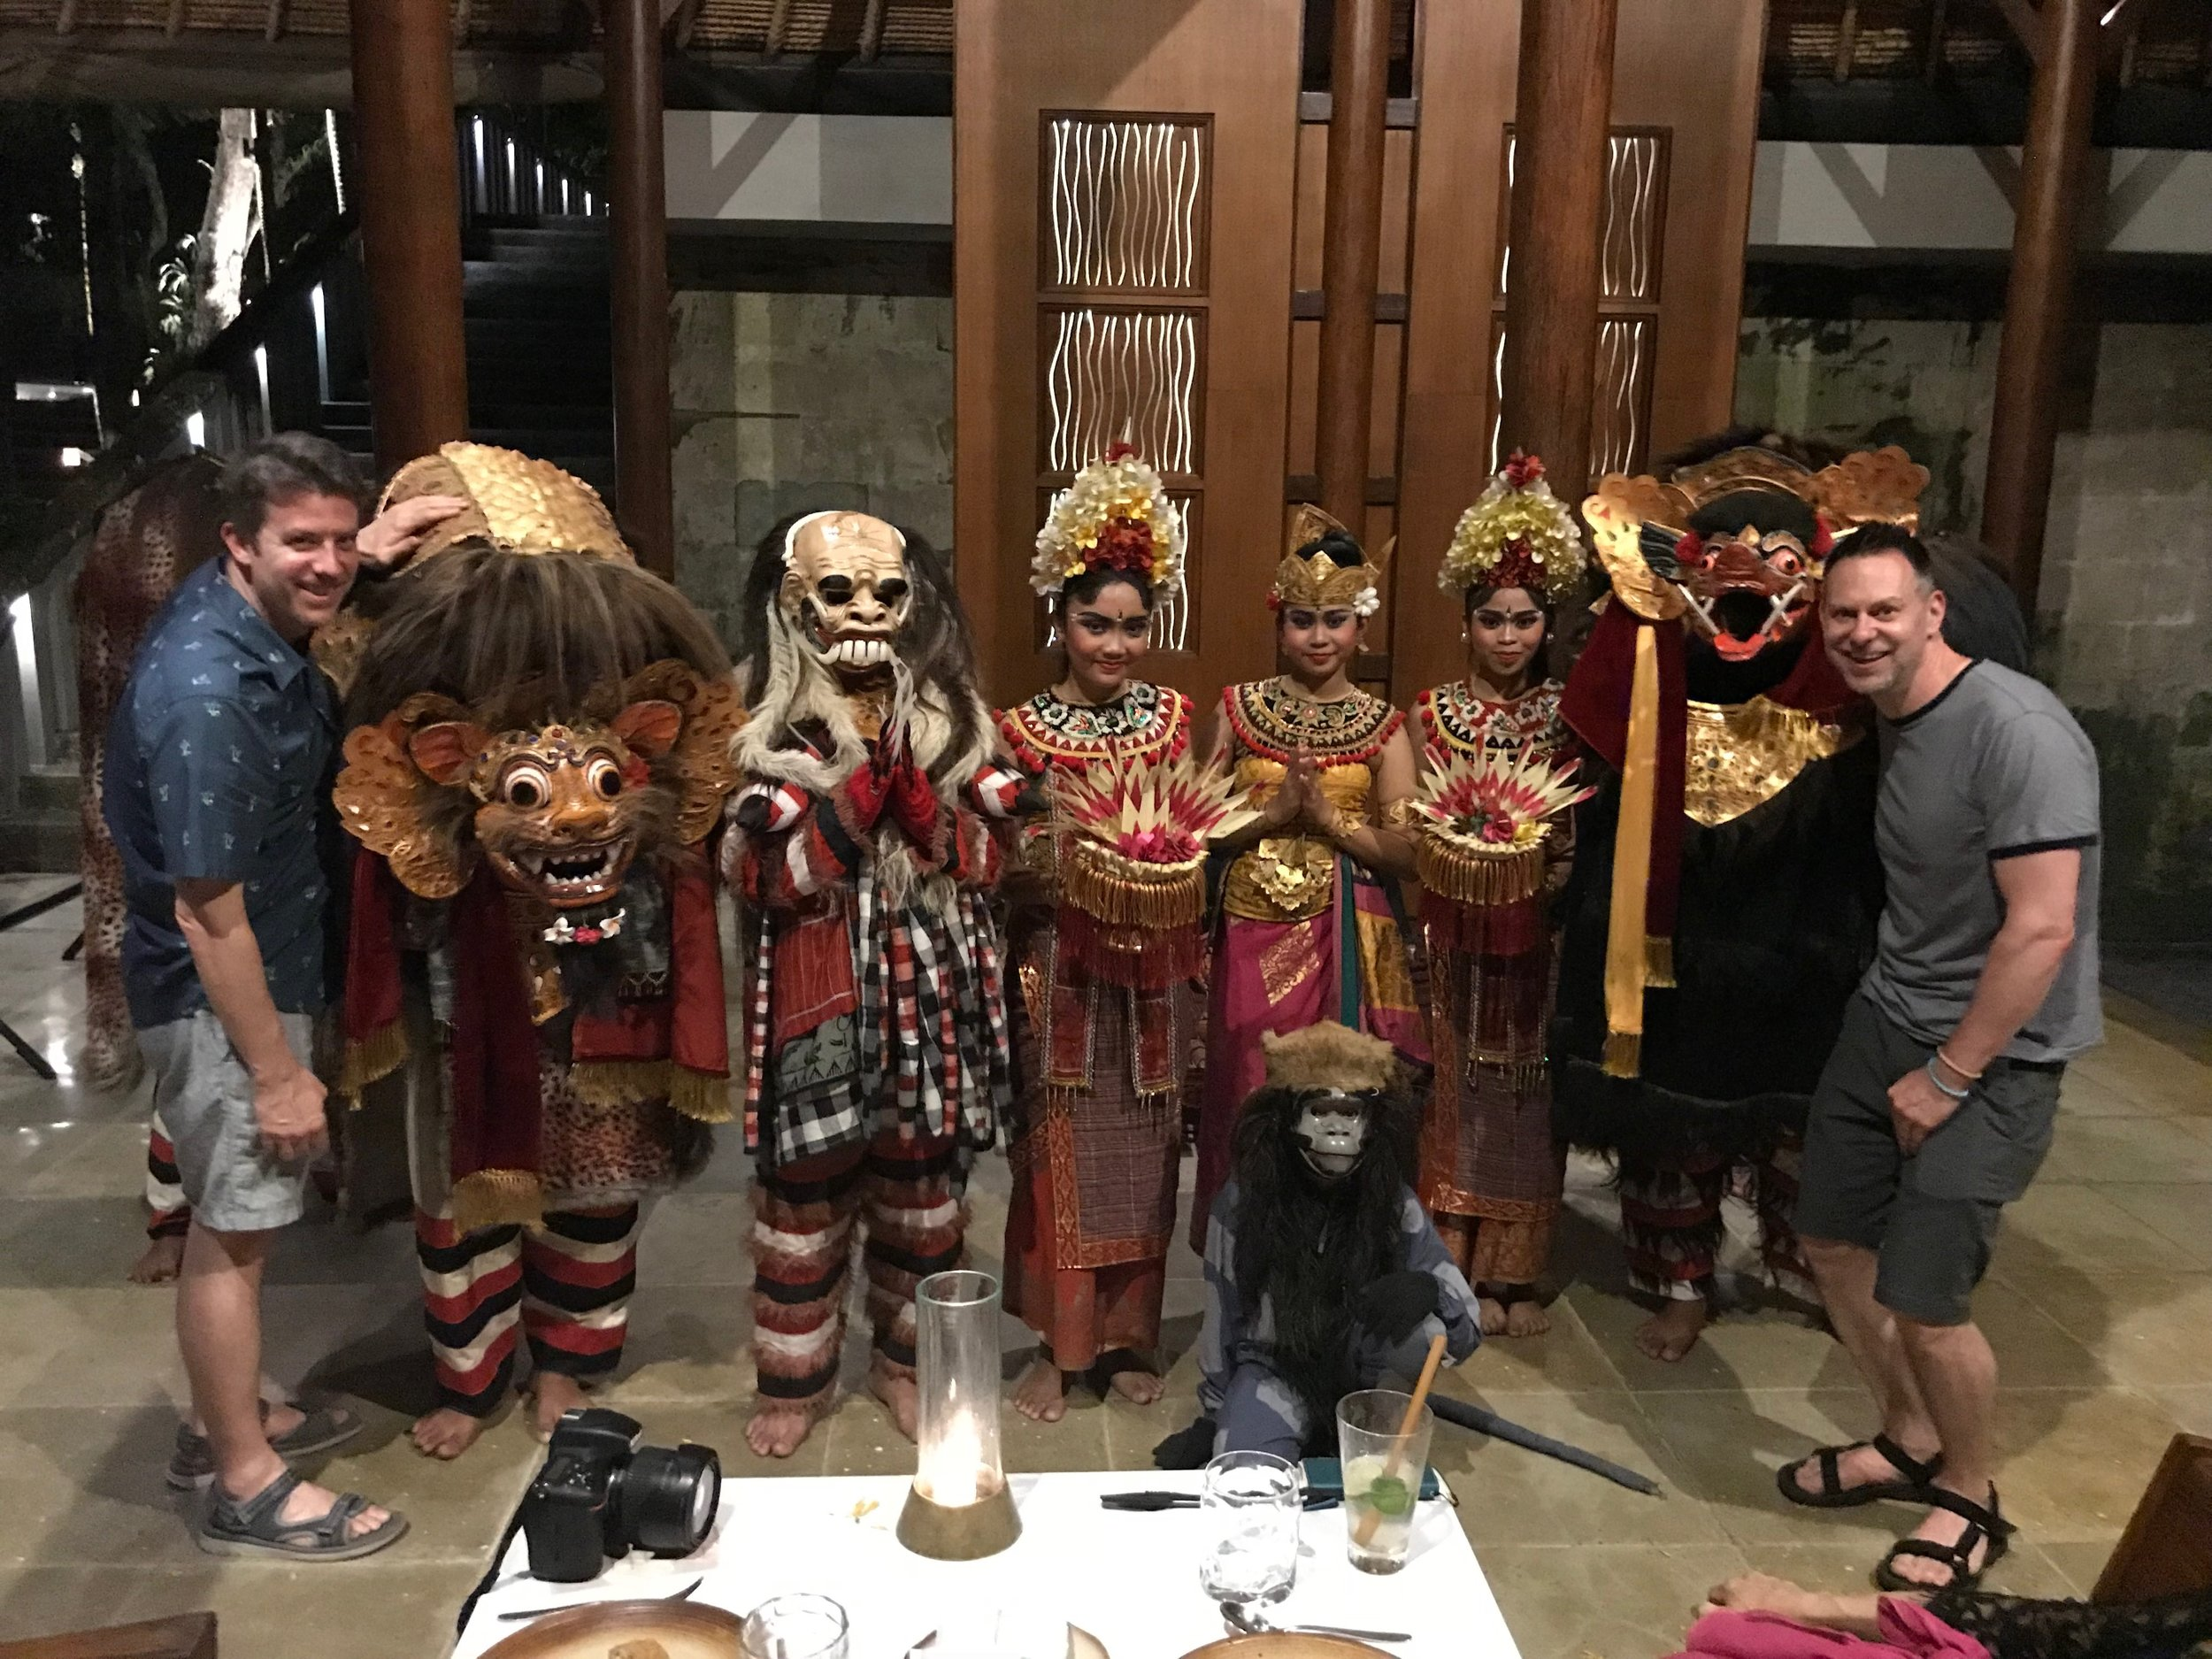 Wally and Duke make some new friends, including Barong and Rangda, which they watched battle in a dance